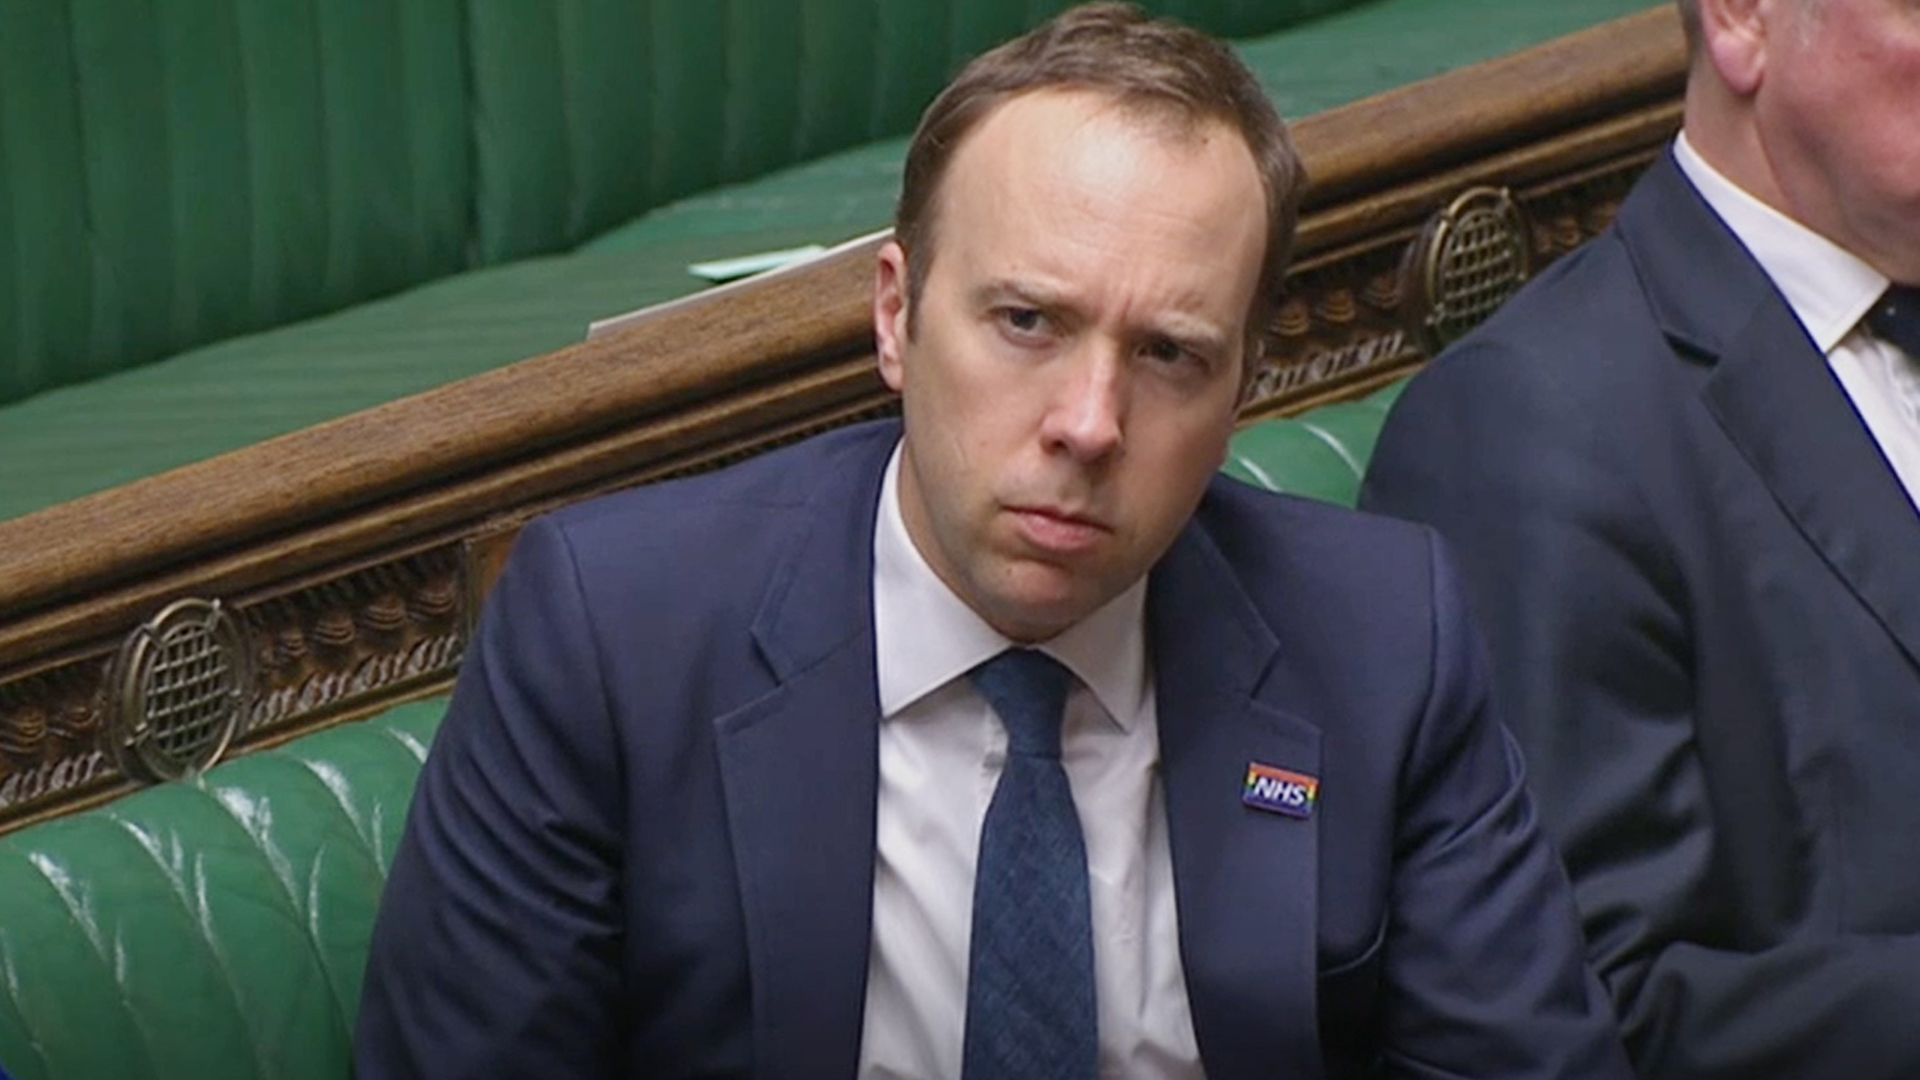 Health secretary Matt Hancock during Prime Minister's Questions in the House of Commons, London - Credit: PA